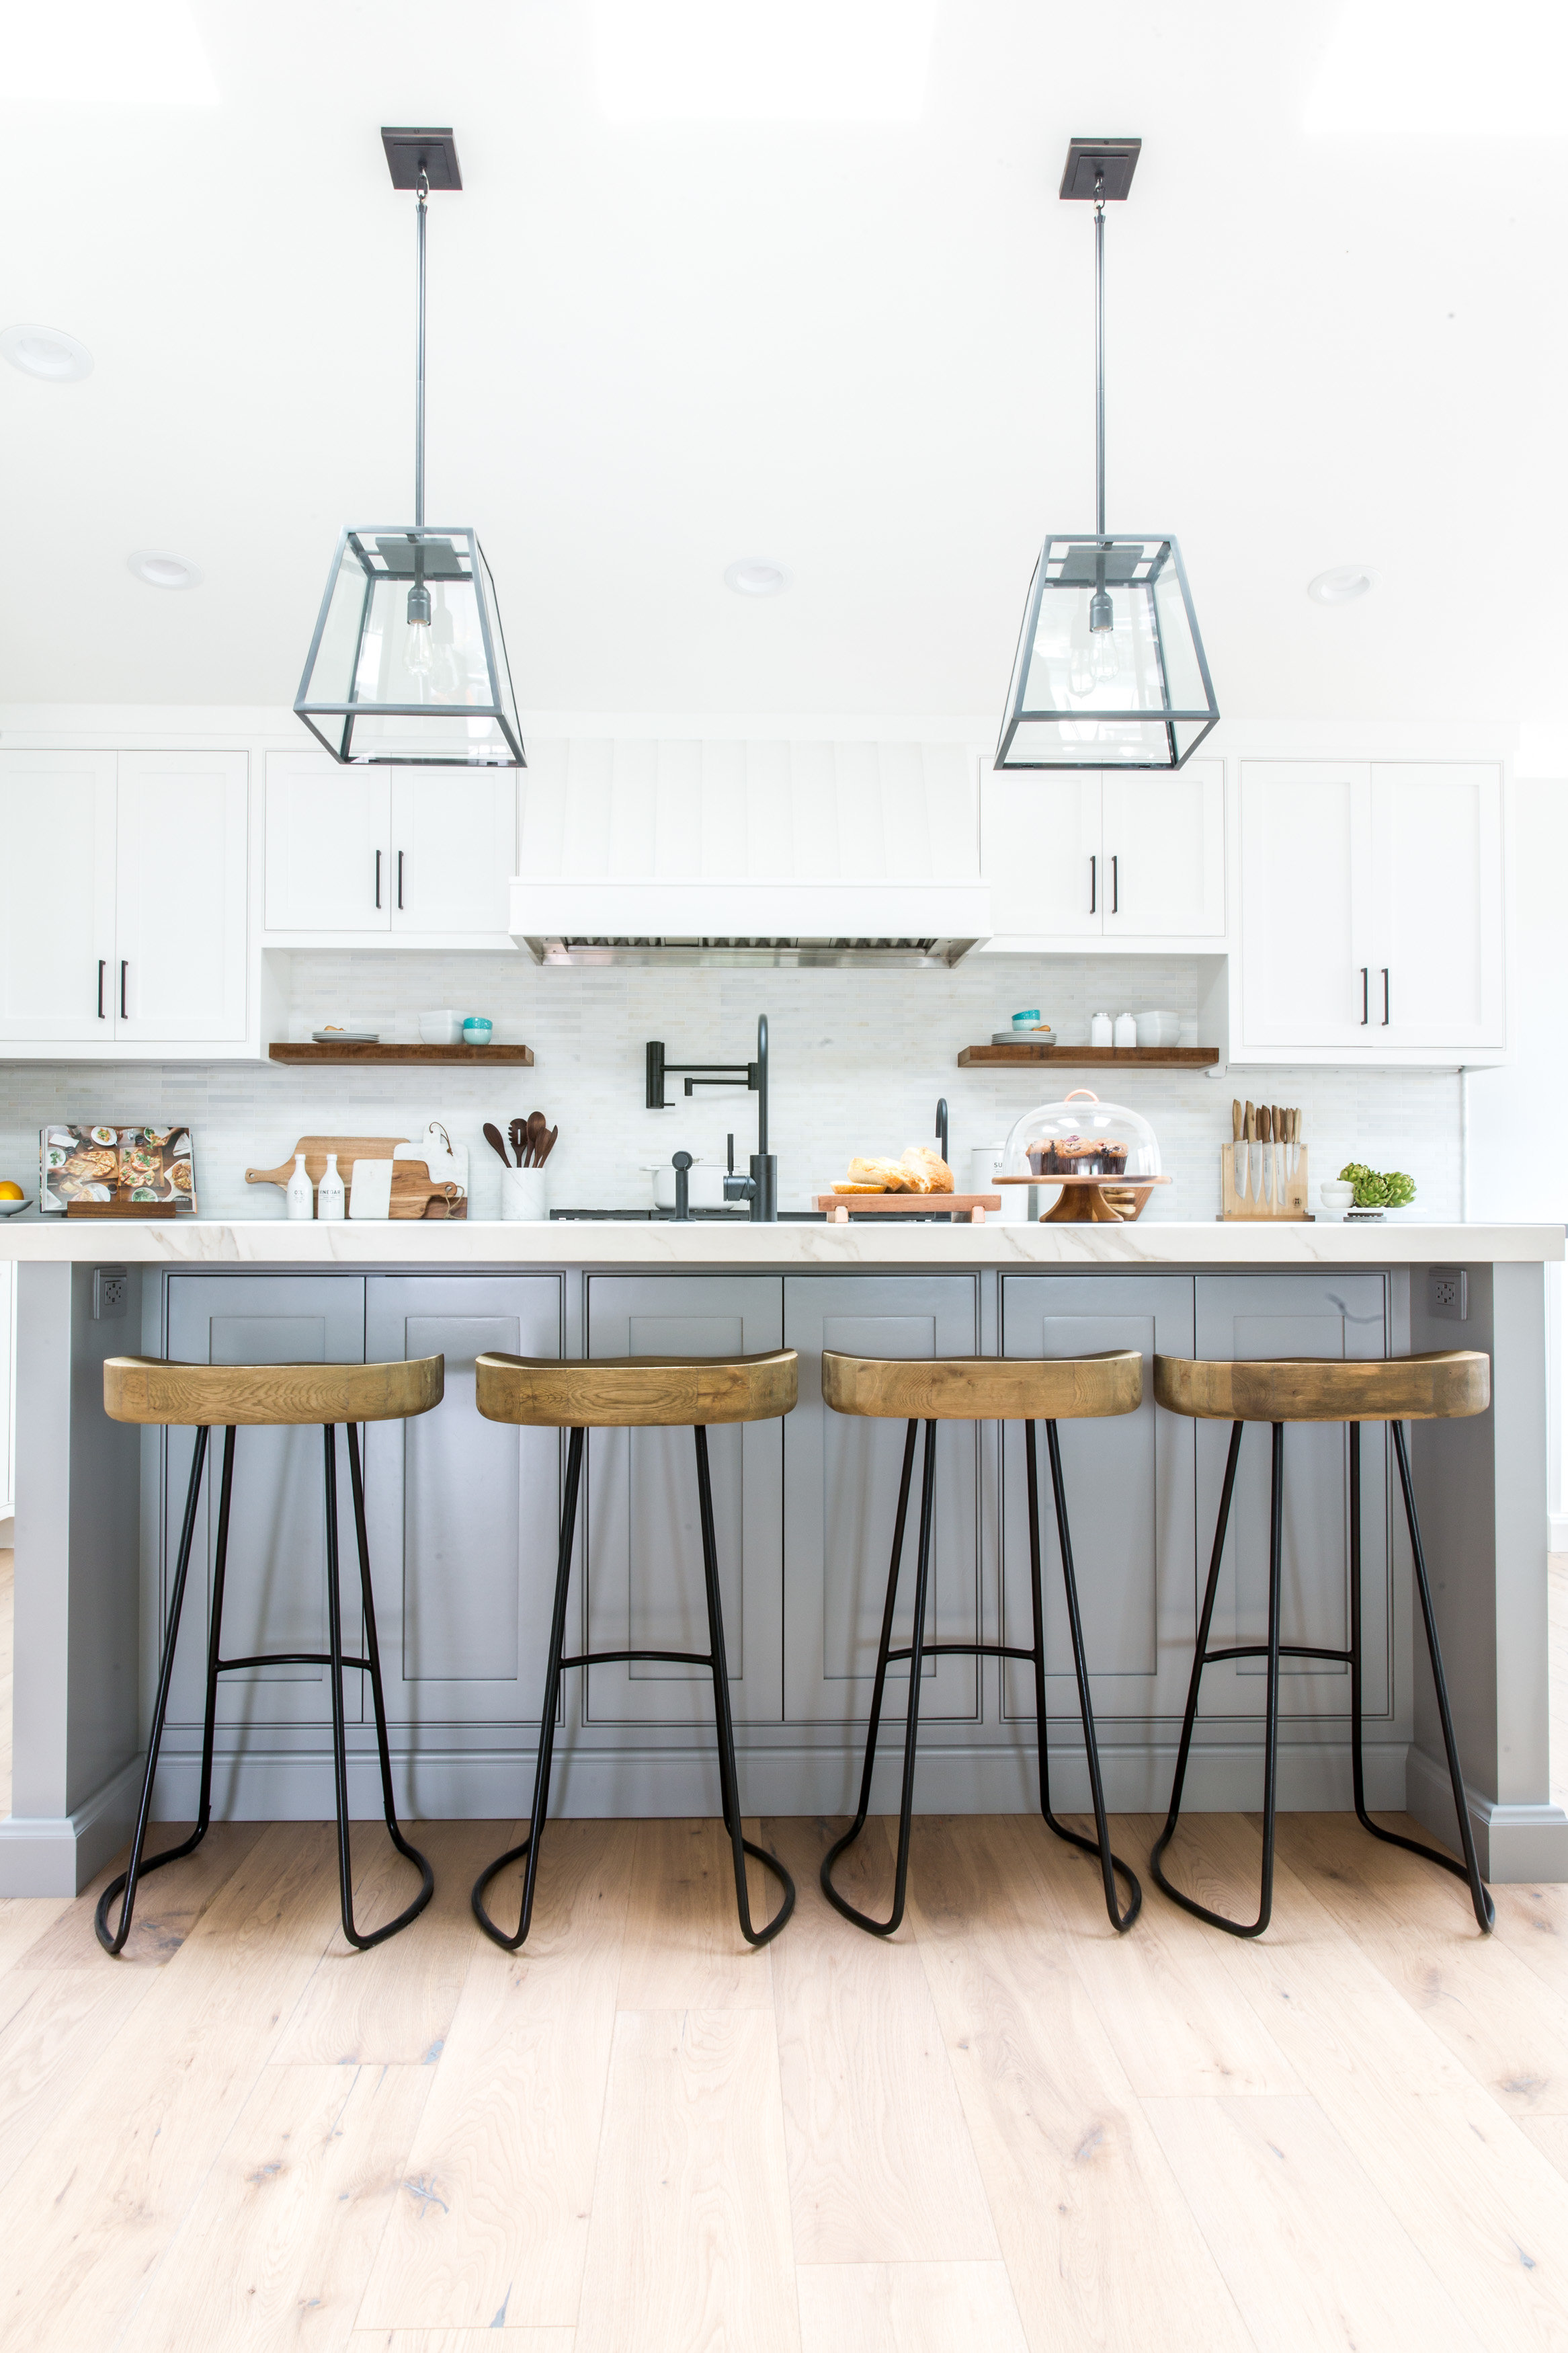 WHITE MARBLE COUNTERTOPS - Carrara, Calacatta or maybe even Pacific White Marble for an elegant and timeless Modern Farmhouse kitchen design.Image by Lindye Galloway Interiors